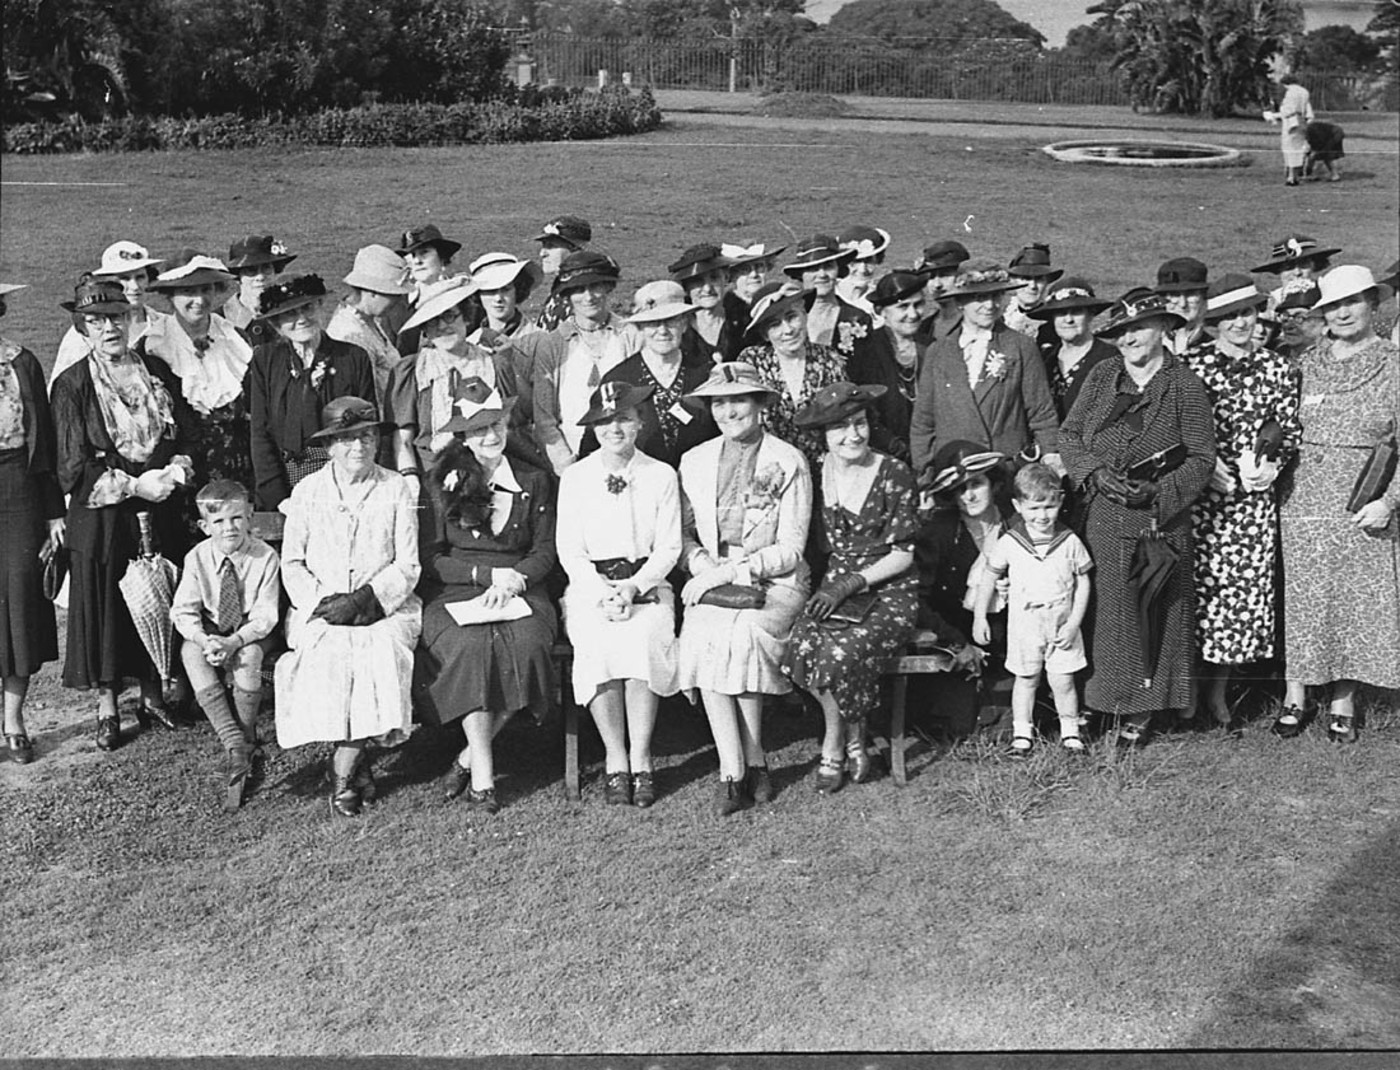 Country Women's Association at Gardens, 14 January 1937, by Sam Hood